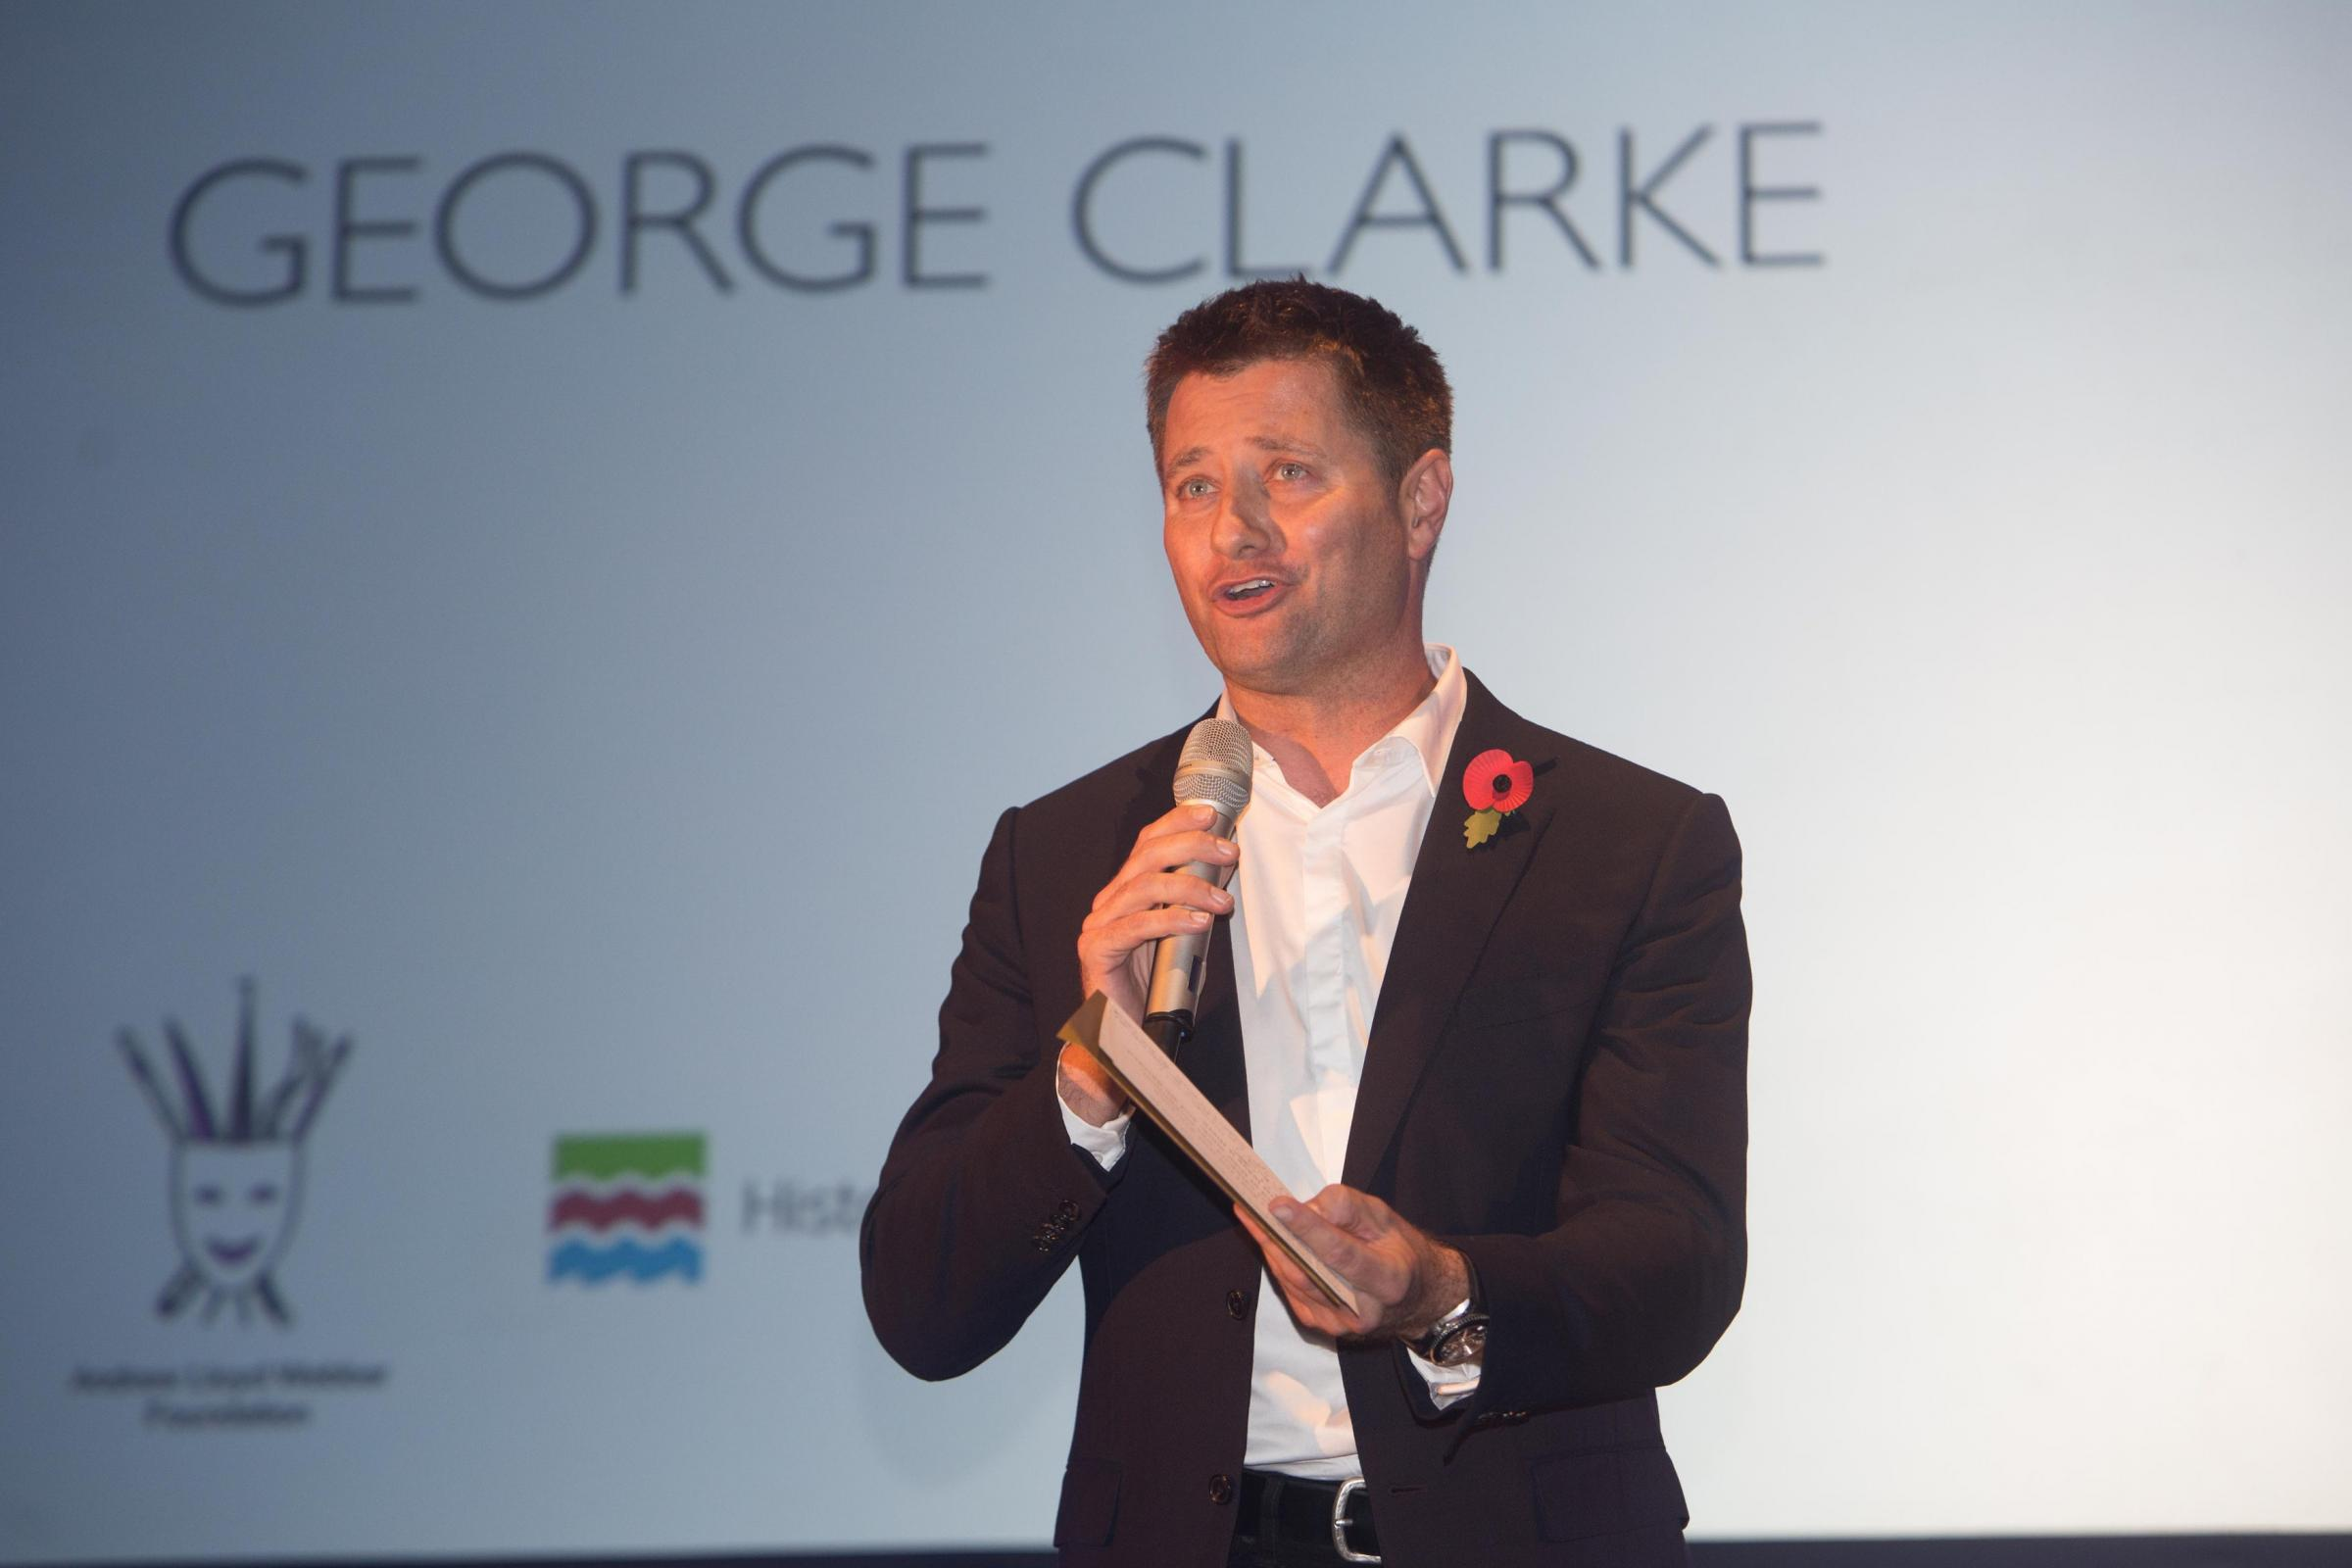 George Clarke returns to council house roots in new Channel 4 series